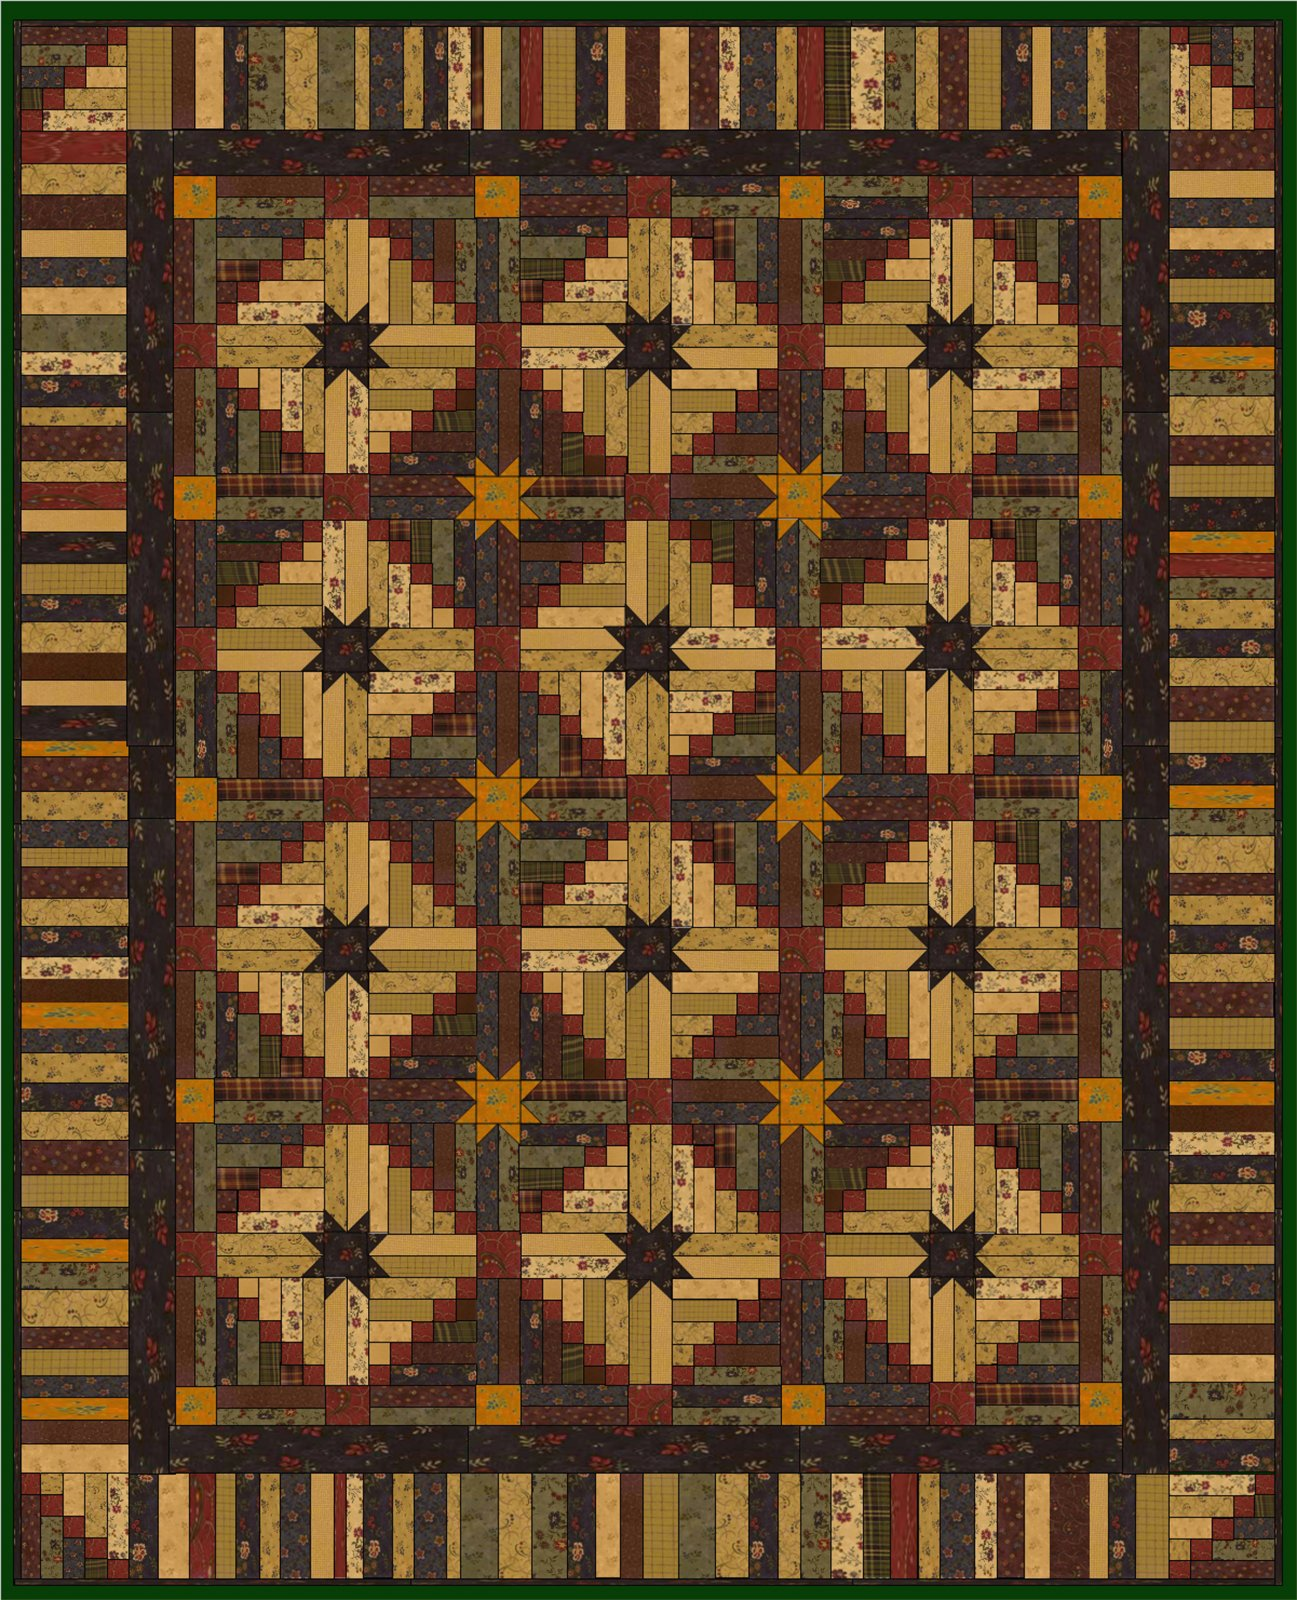 Irish Stars Quilt Pattern DIGITAL DOWNLOAD